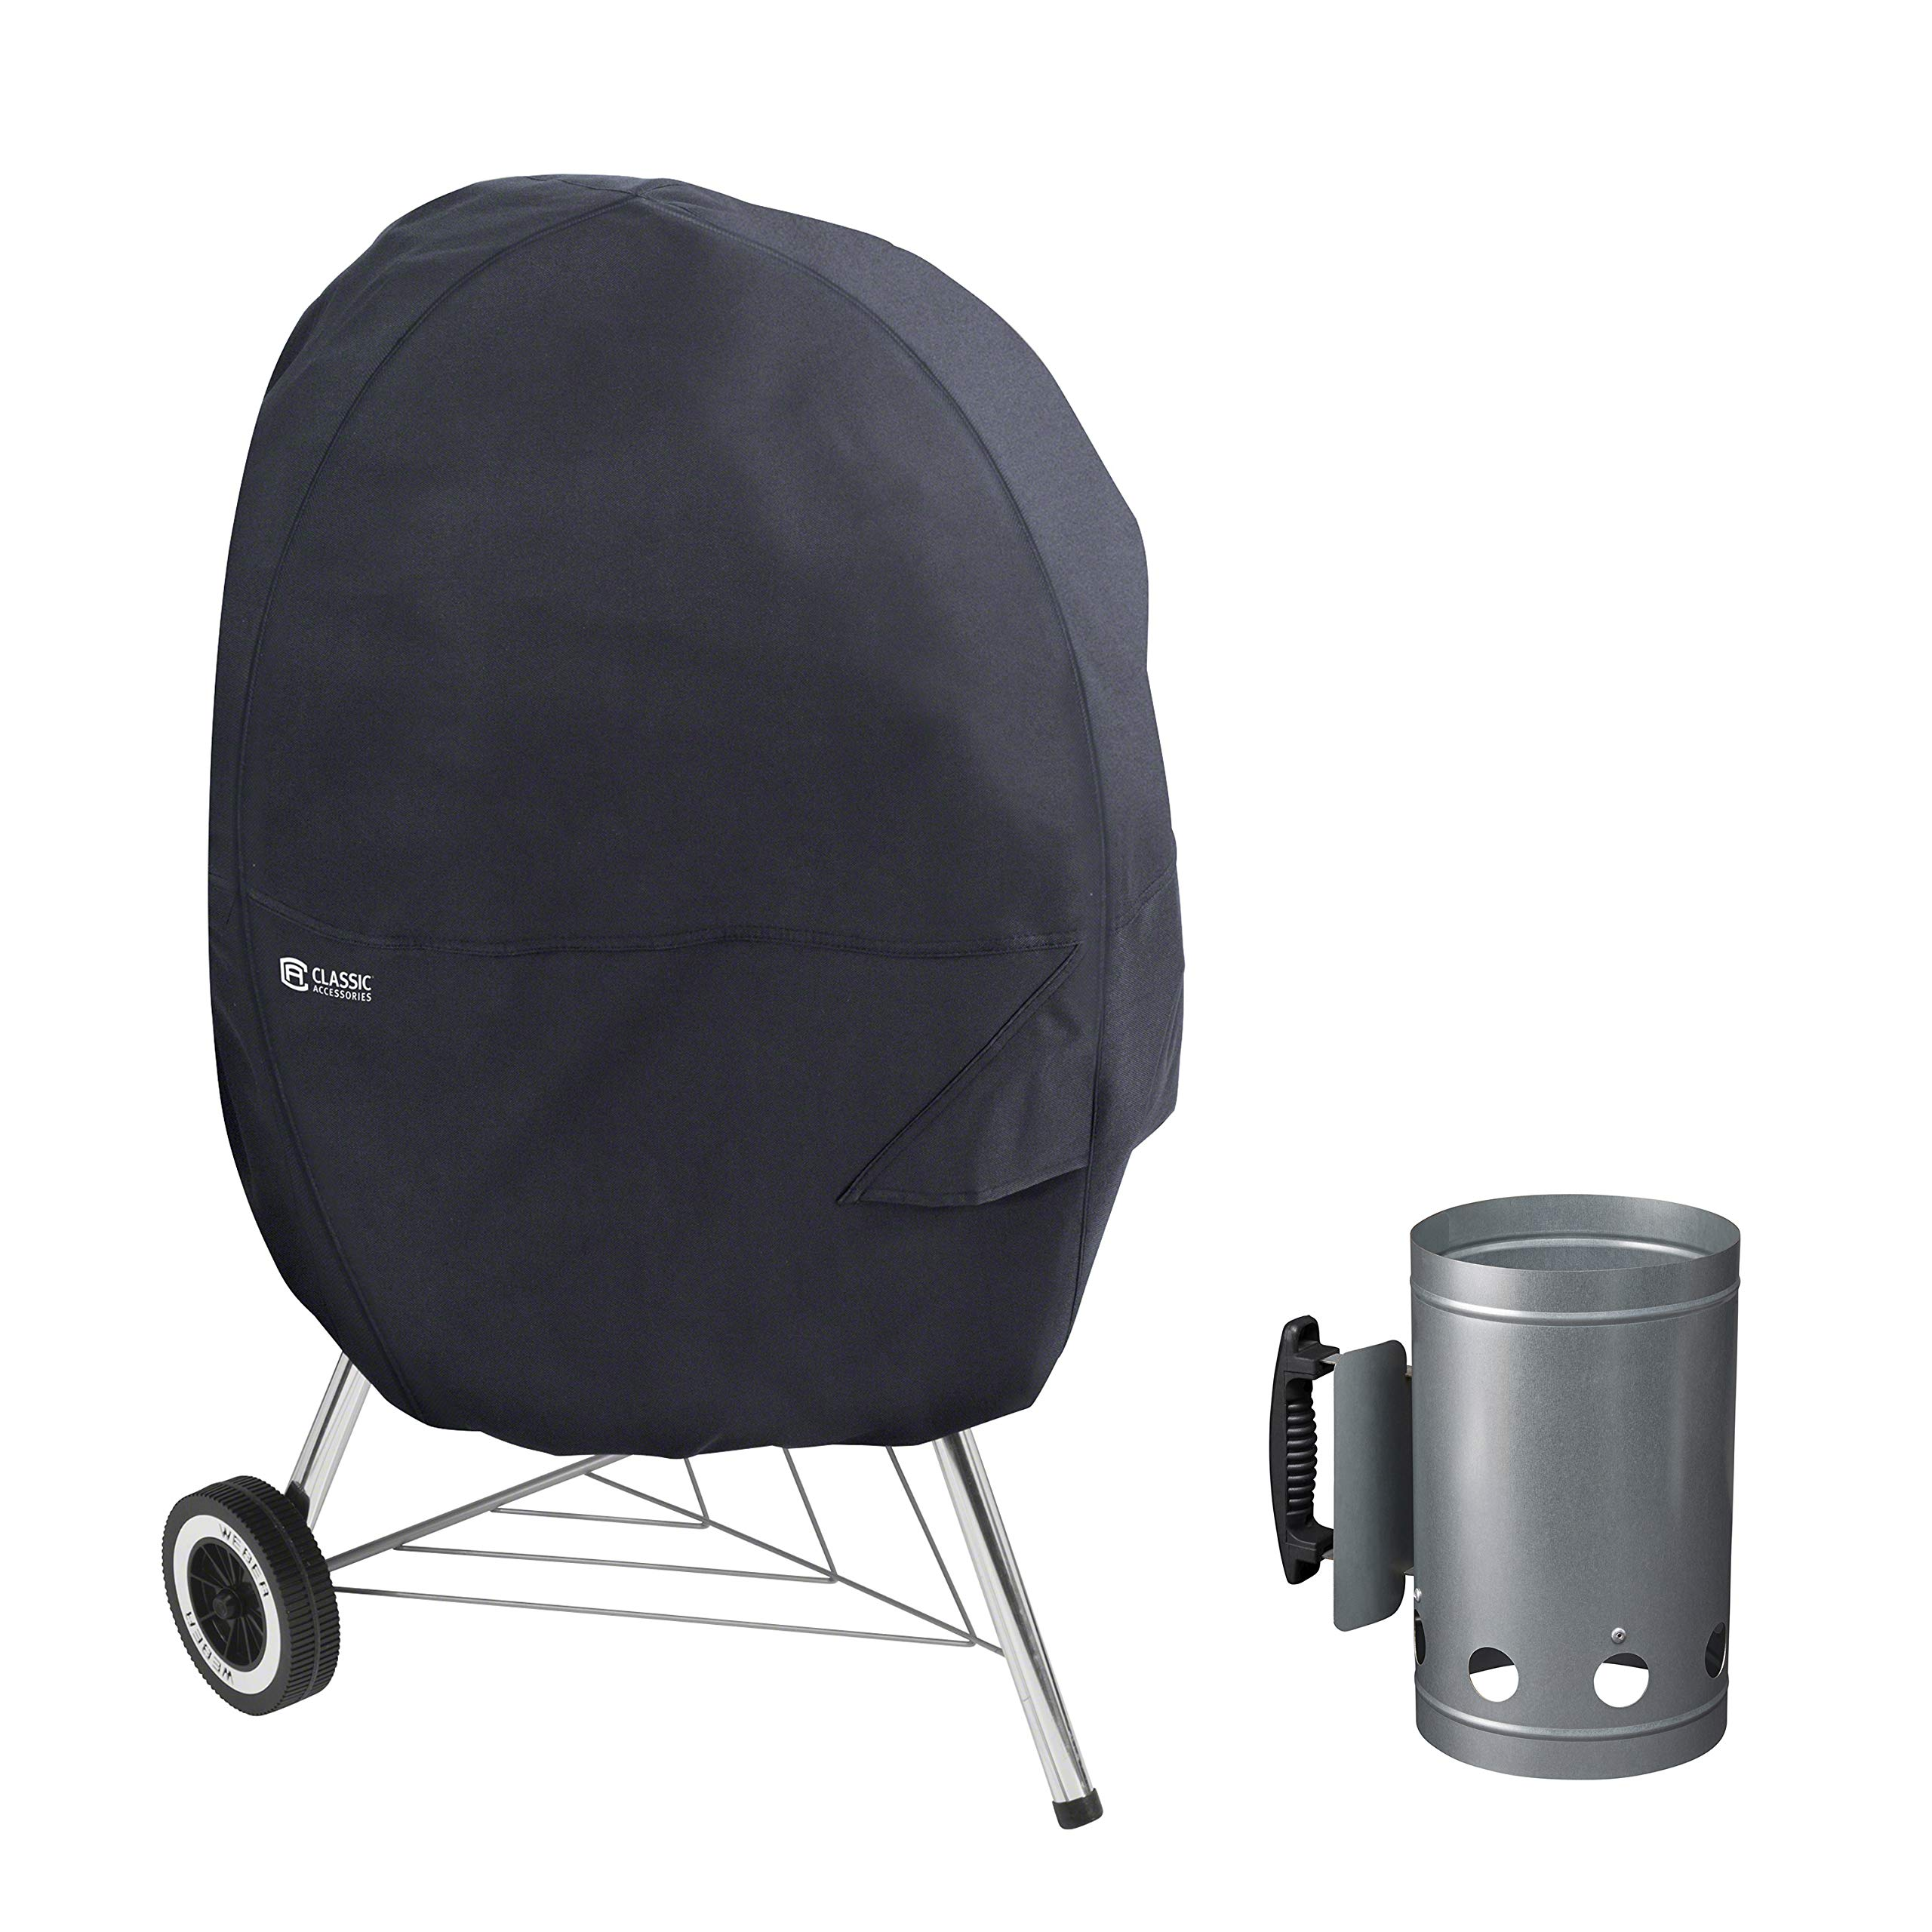 Classic Accessories Water-Resistant 30 Inch Kettle BBQ Grill Cover with Charcoal Chimney